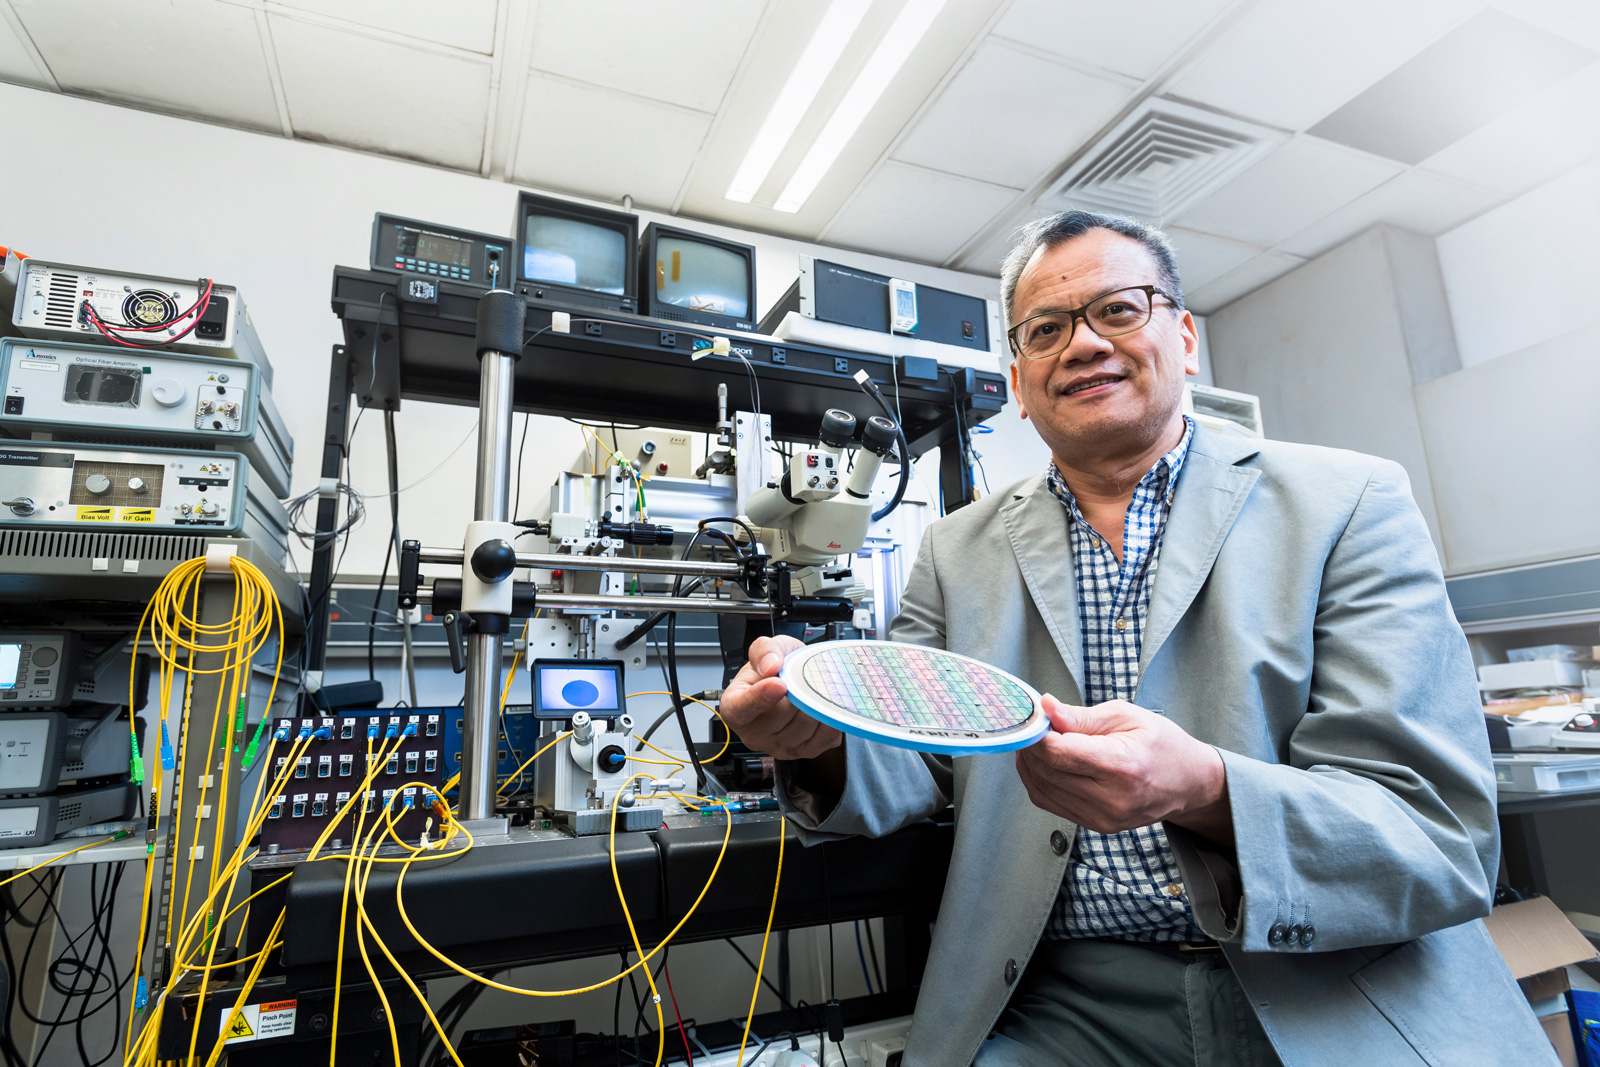 Dr Chu Sai-tak works on the design and fabrication of the chips which contribute to the fastest internet speed in the world.